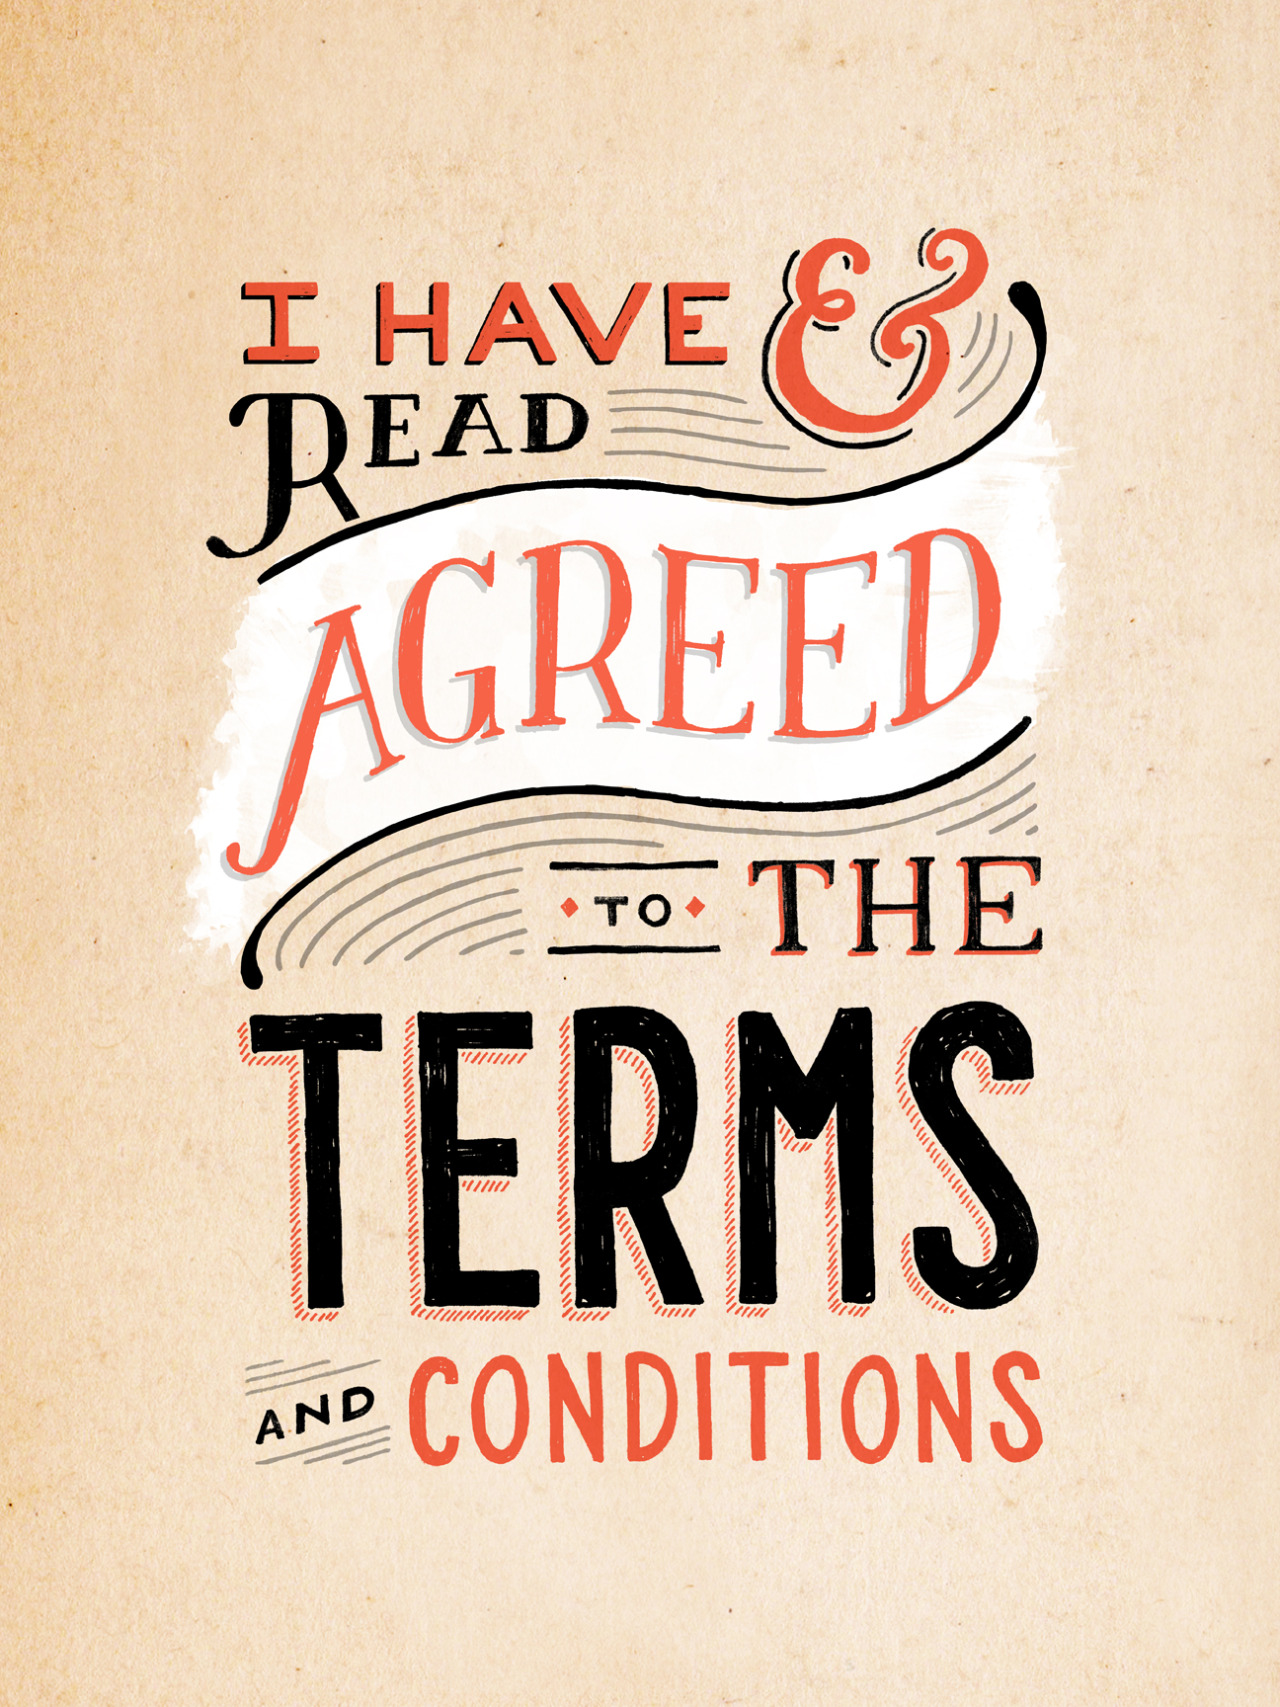 I have read & agreed to the terms and conditions